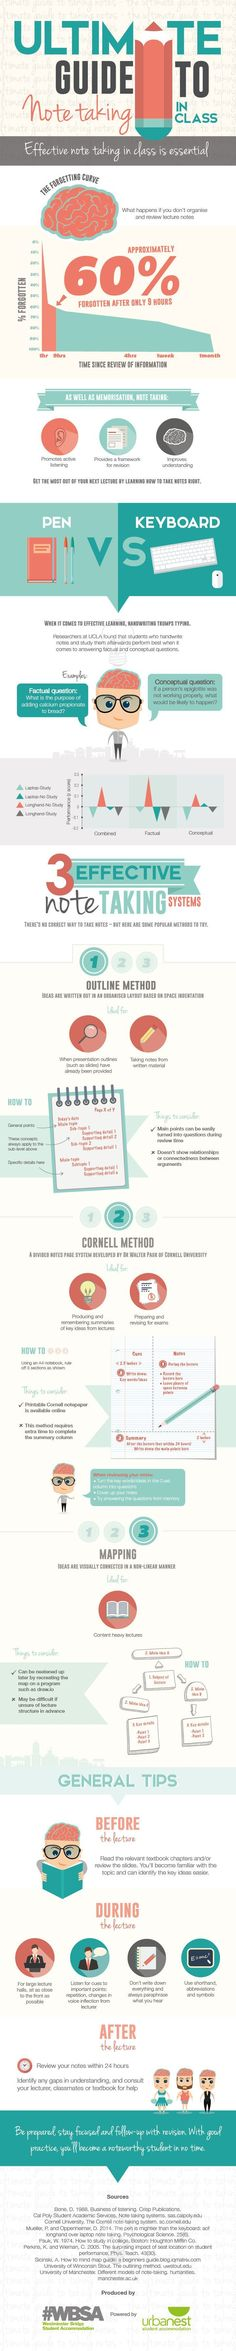 The Ultimate Guide To Note-Taking [Infographic] http://www.lifehack.org/articles/productivity/the-ultimate-guide-note-taking-infographic.html